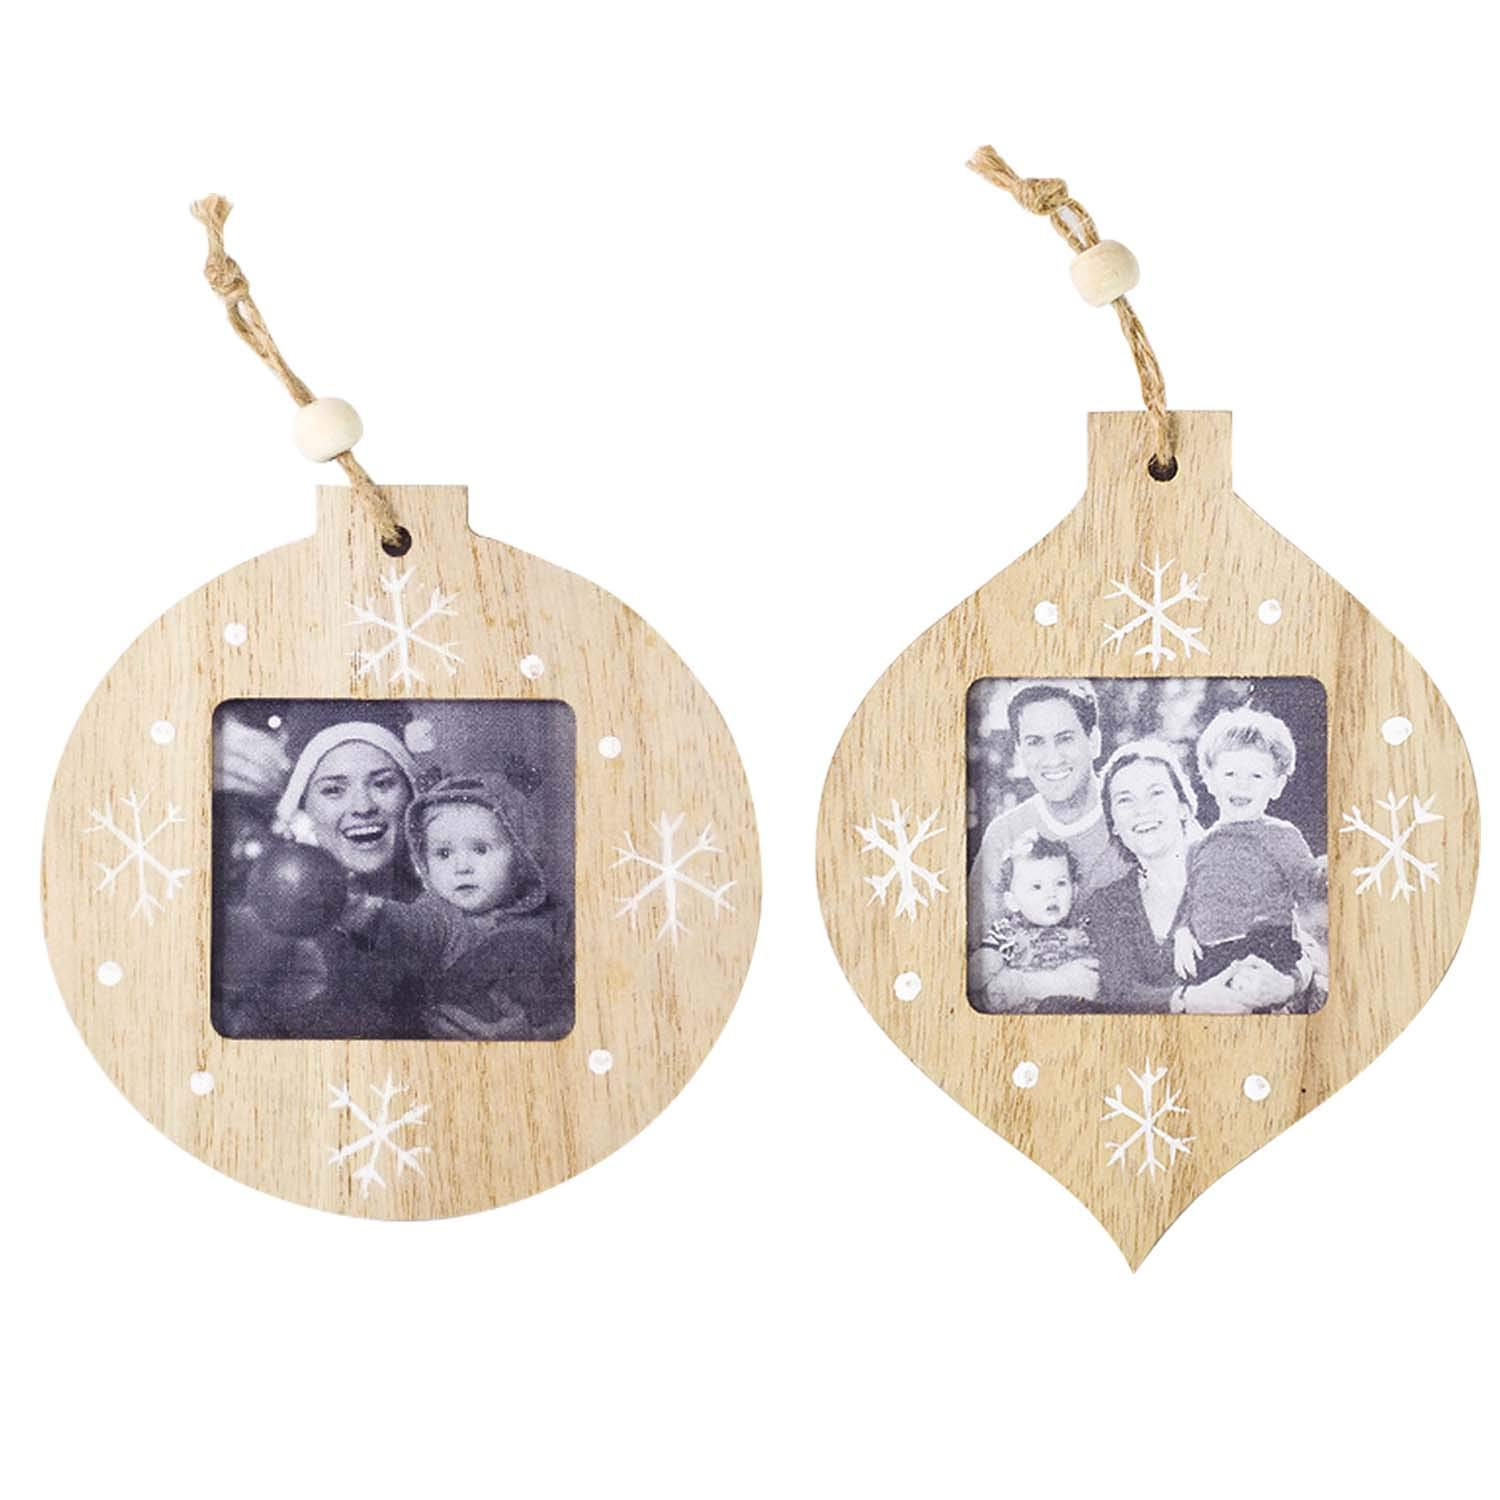 2pcs Christmas Wooden Photo Picture Frame Christmas Tree Hanging Pendants Ornaments Xmas Home Decorations Gosearca